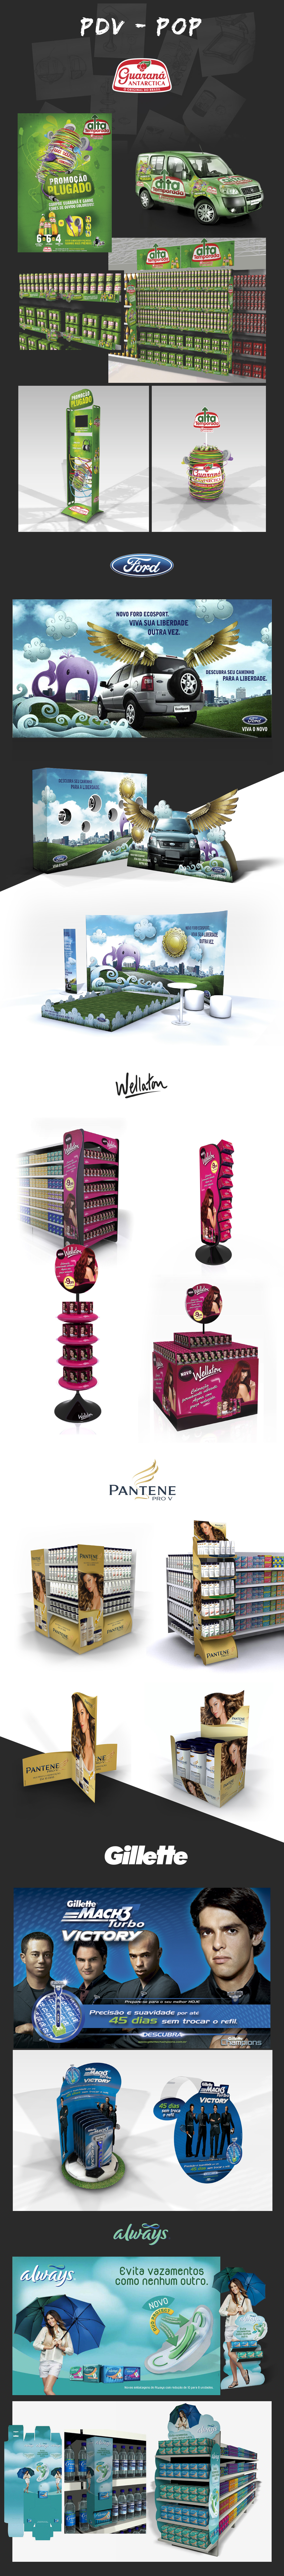 p&G Point of Purchase Point of Sale pop pos PDV merchandising Display